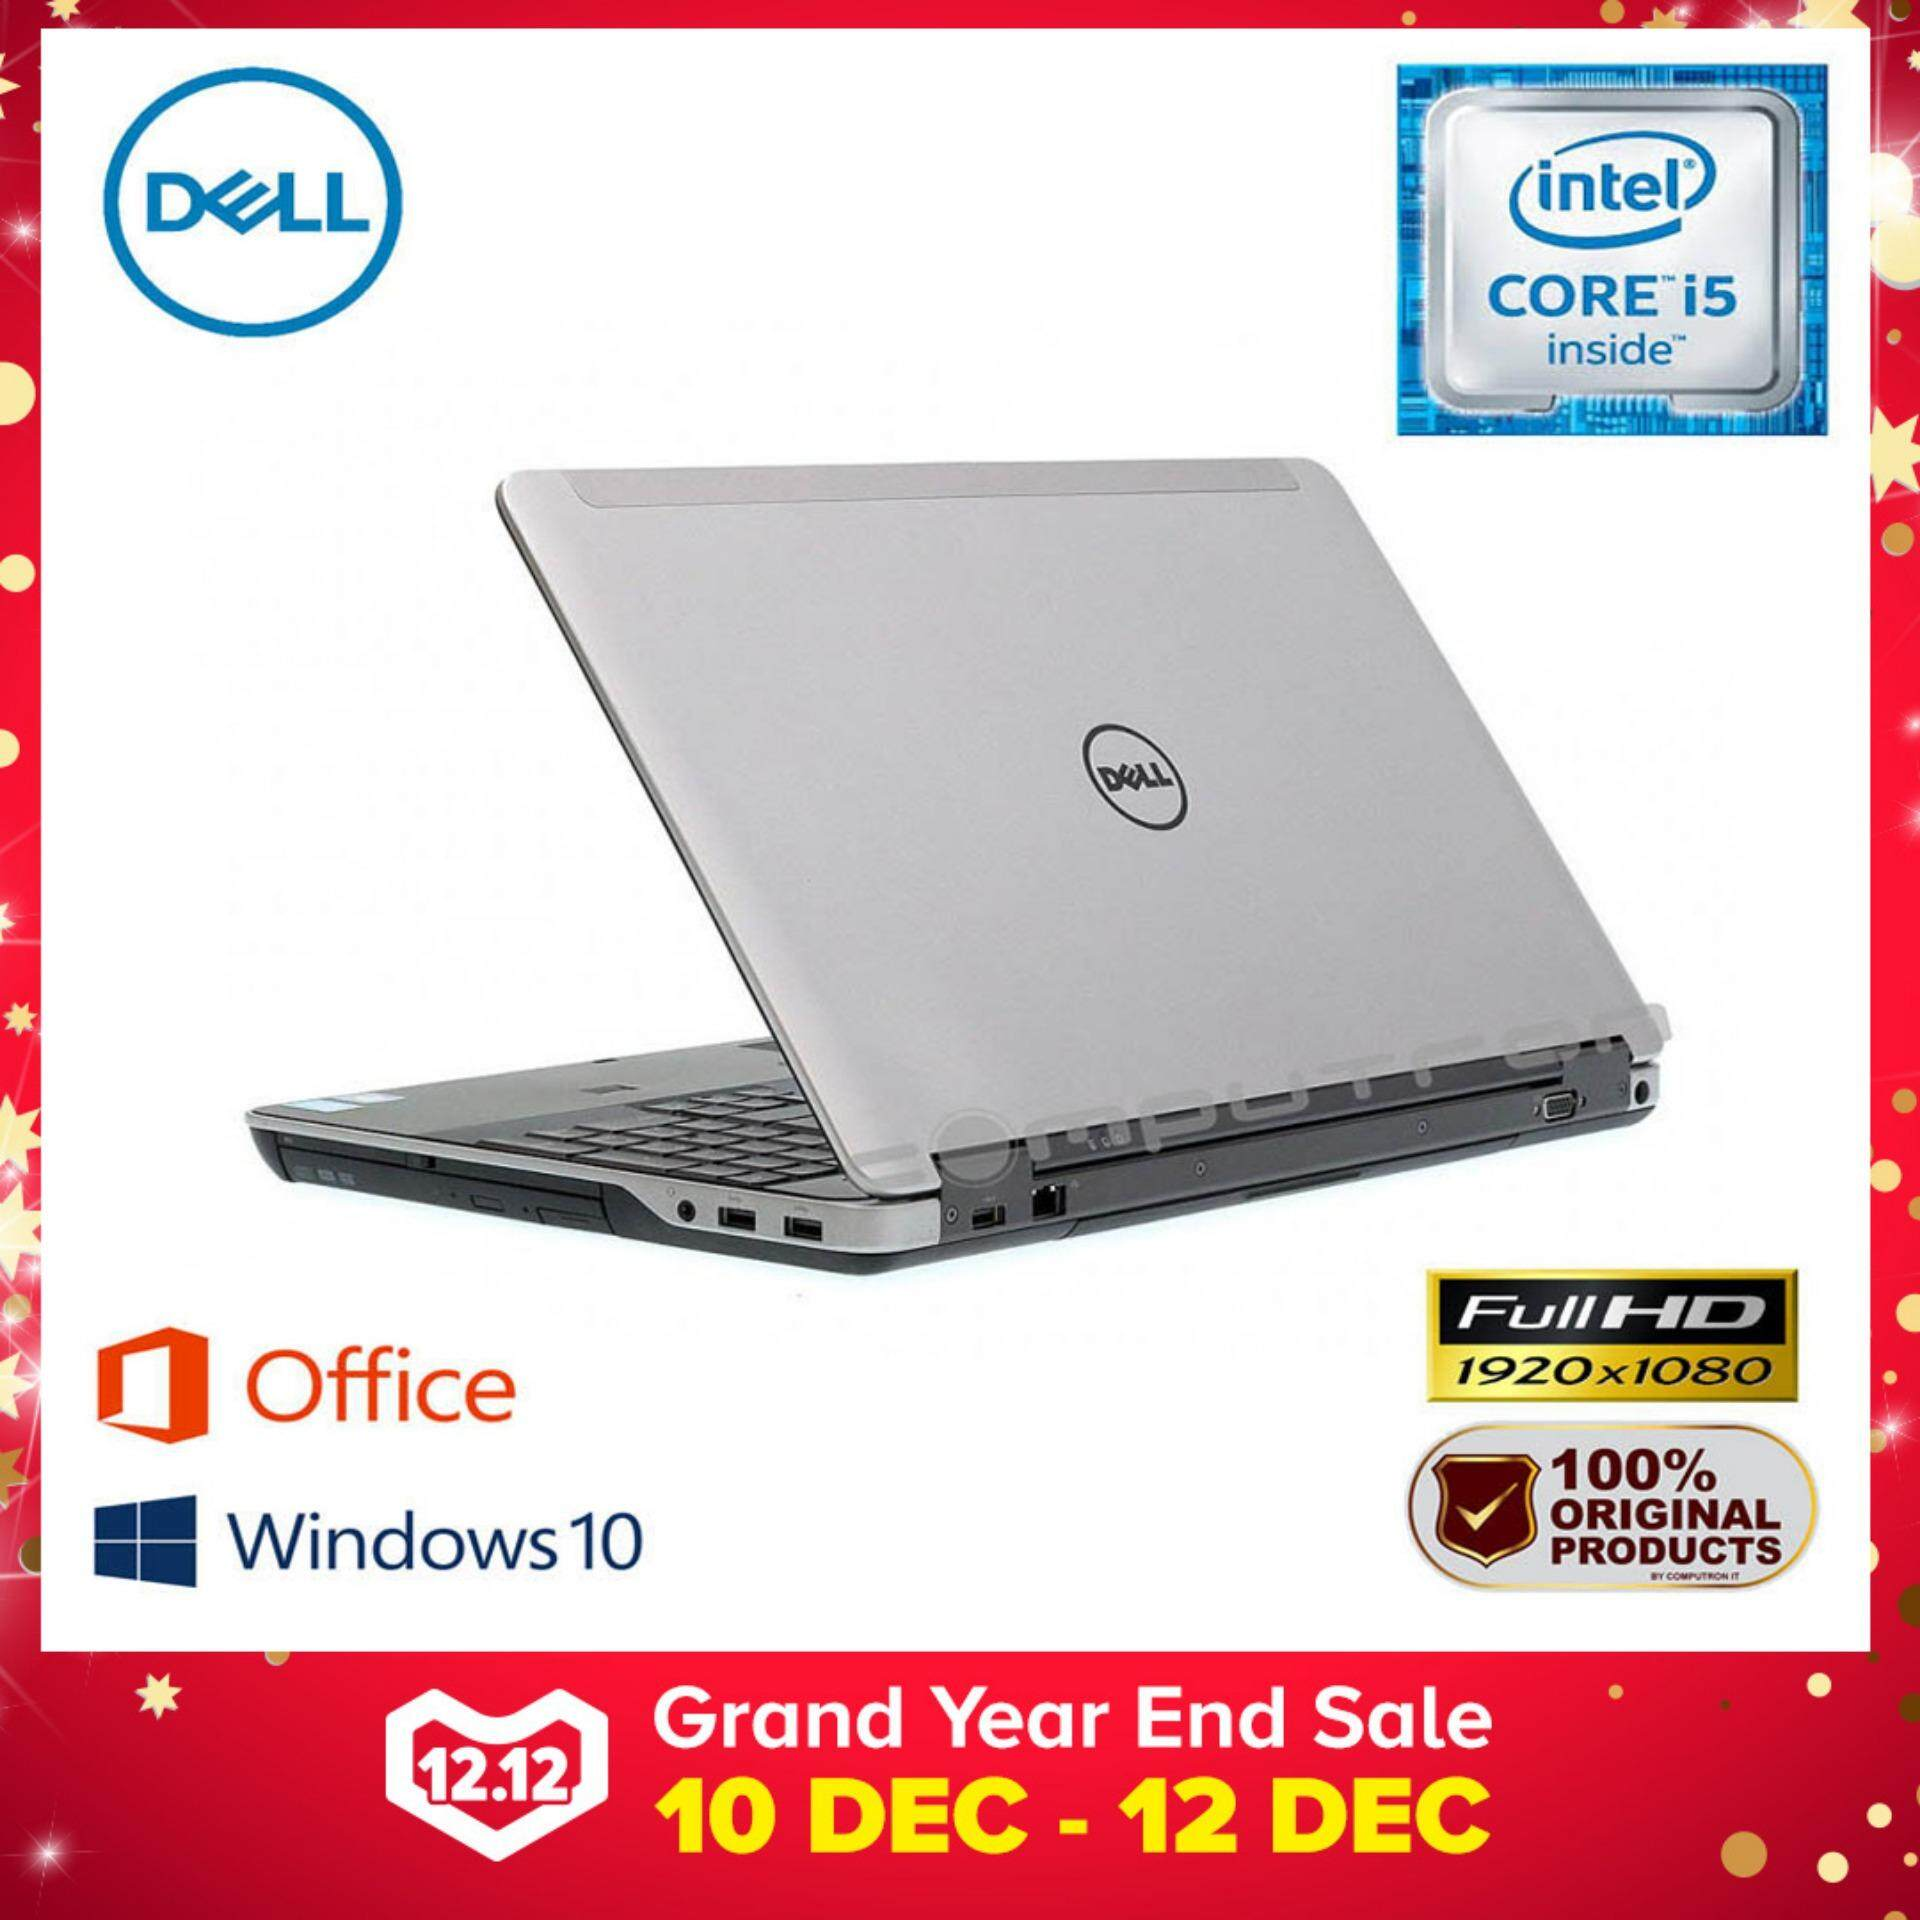 DELL LATITUDE E6540 15.6-INCH [FULL HD] CORE I5/ 4GB RAM/ 500GB [ 2 YEAR WARRANTY ] Malaysia